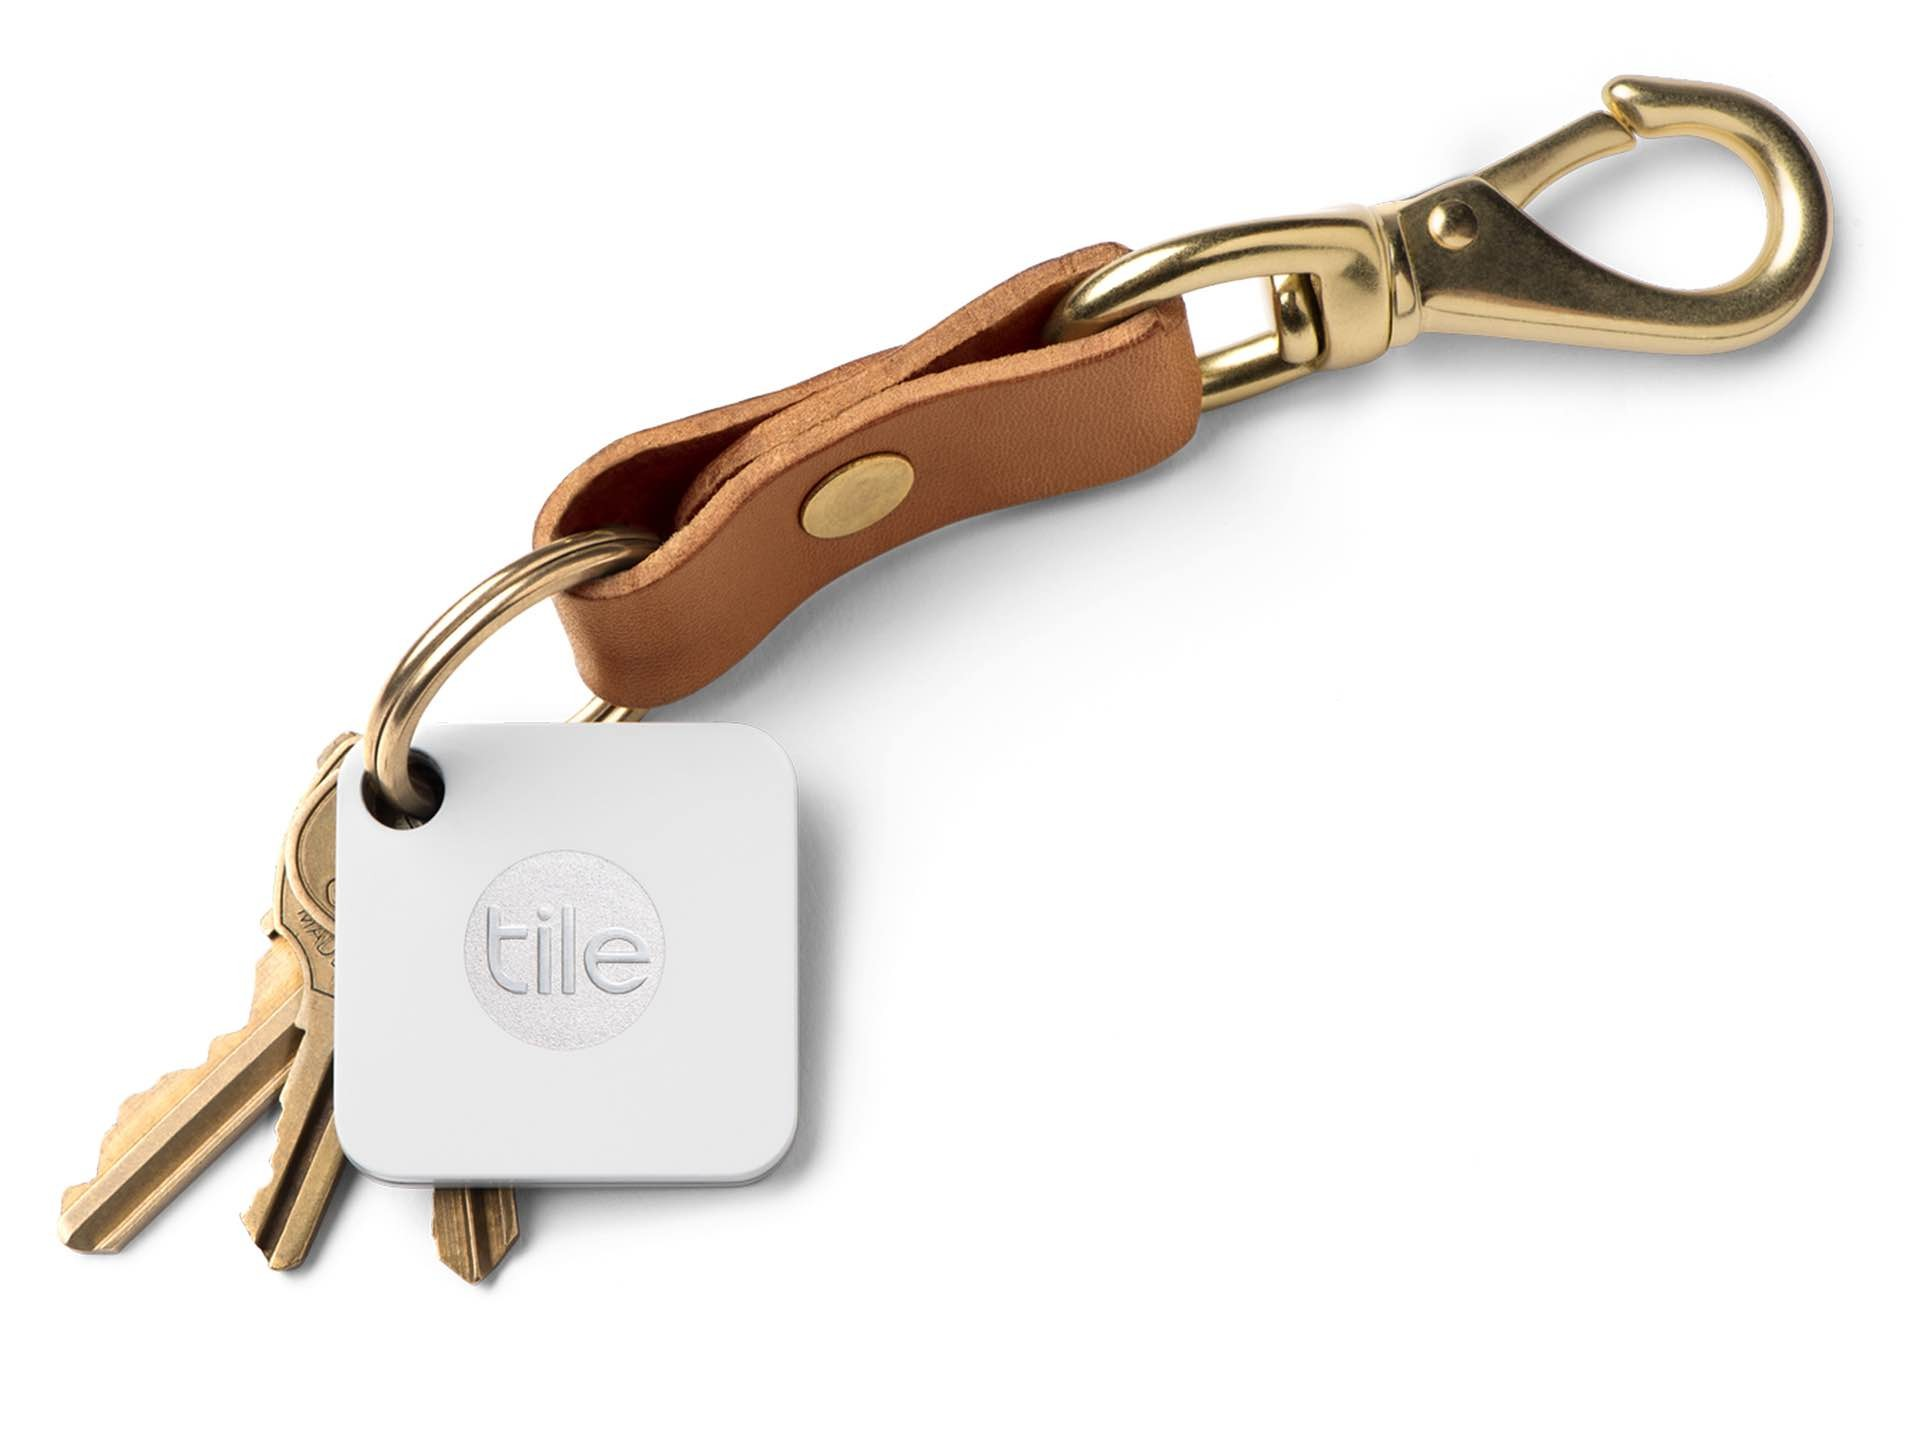 Tile Mate Bluetooth tracker & key finder. ($20 for one, $58 for a 4-pack, or $109 for an 8-pack)